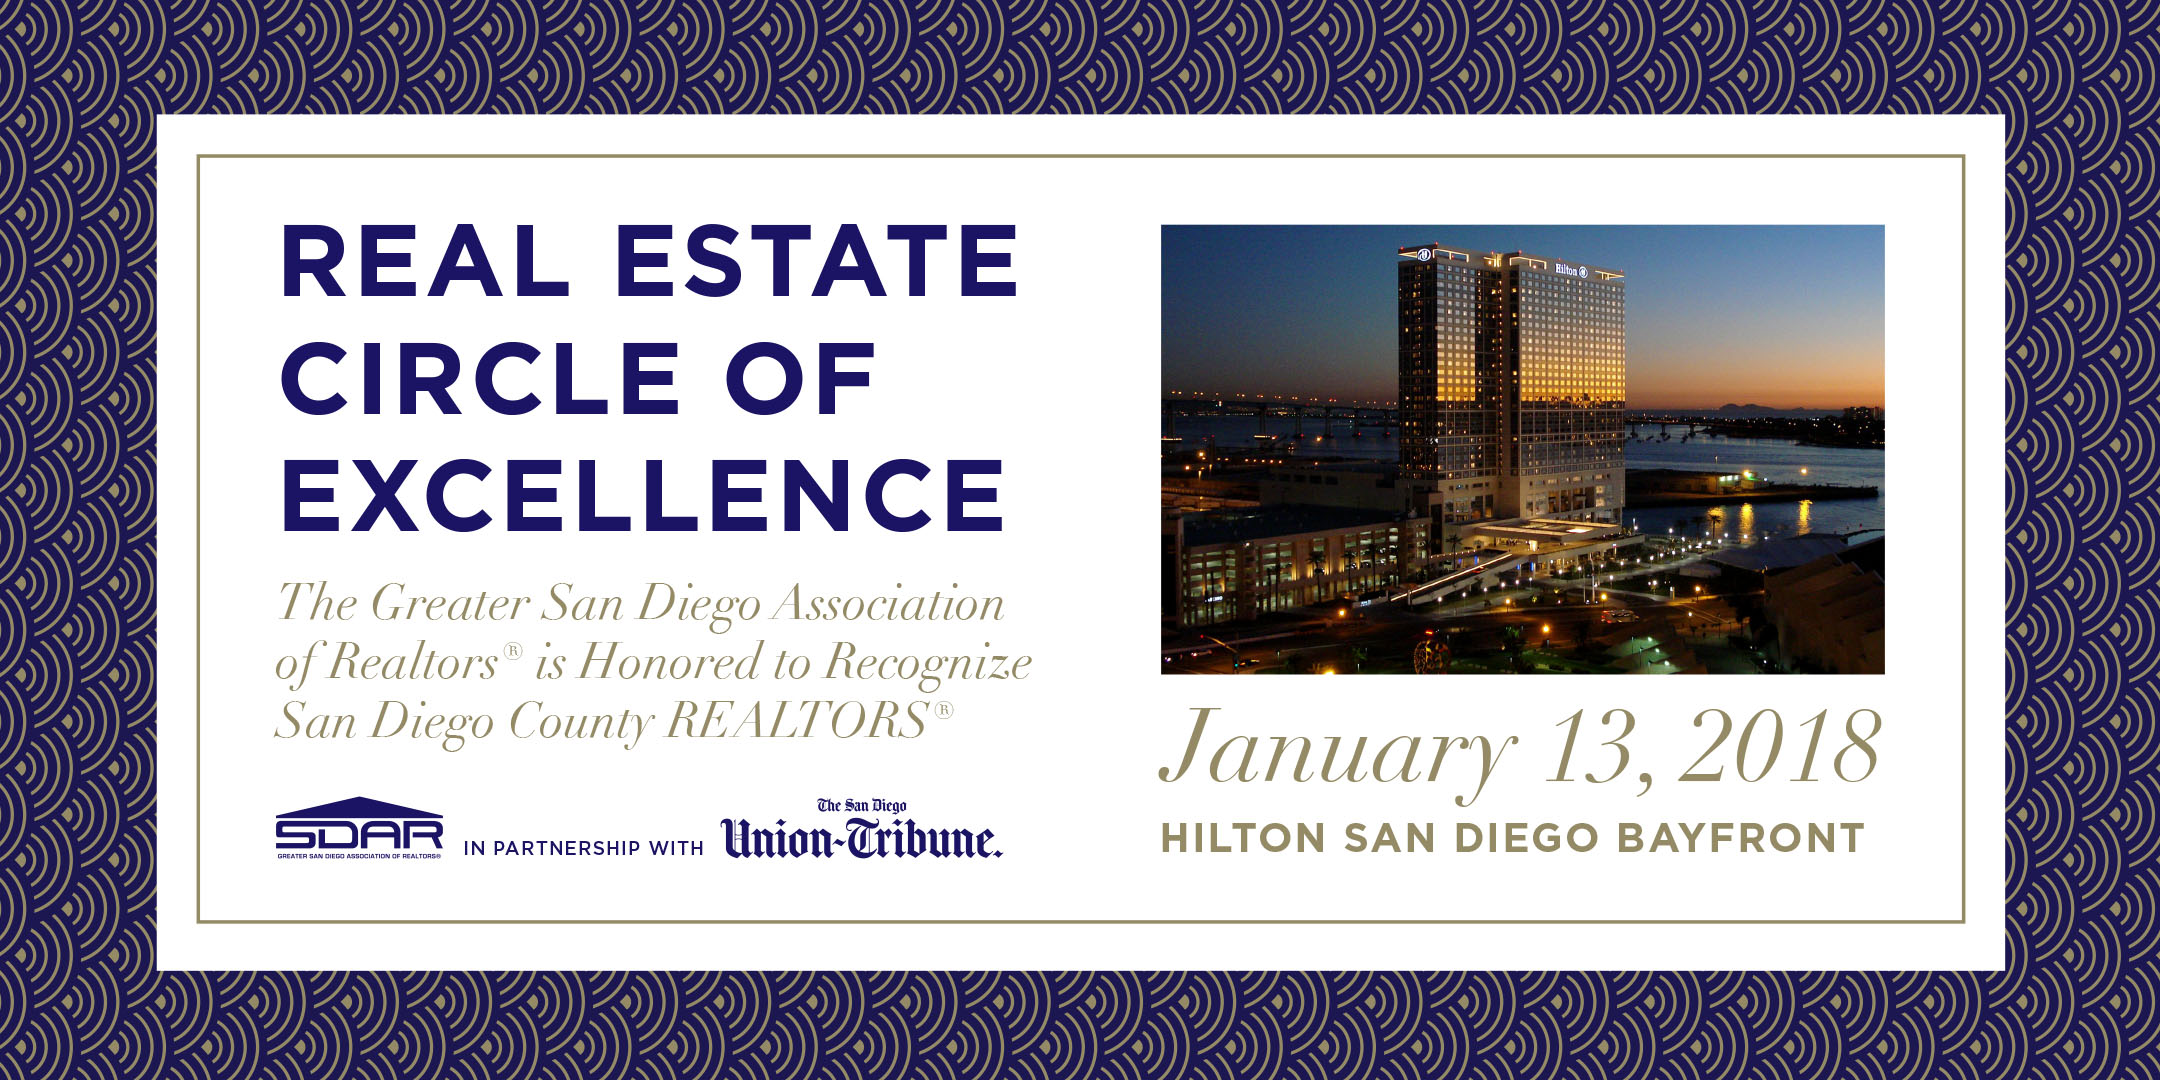 SDAR 2017 Real Estate Circle of Excellence